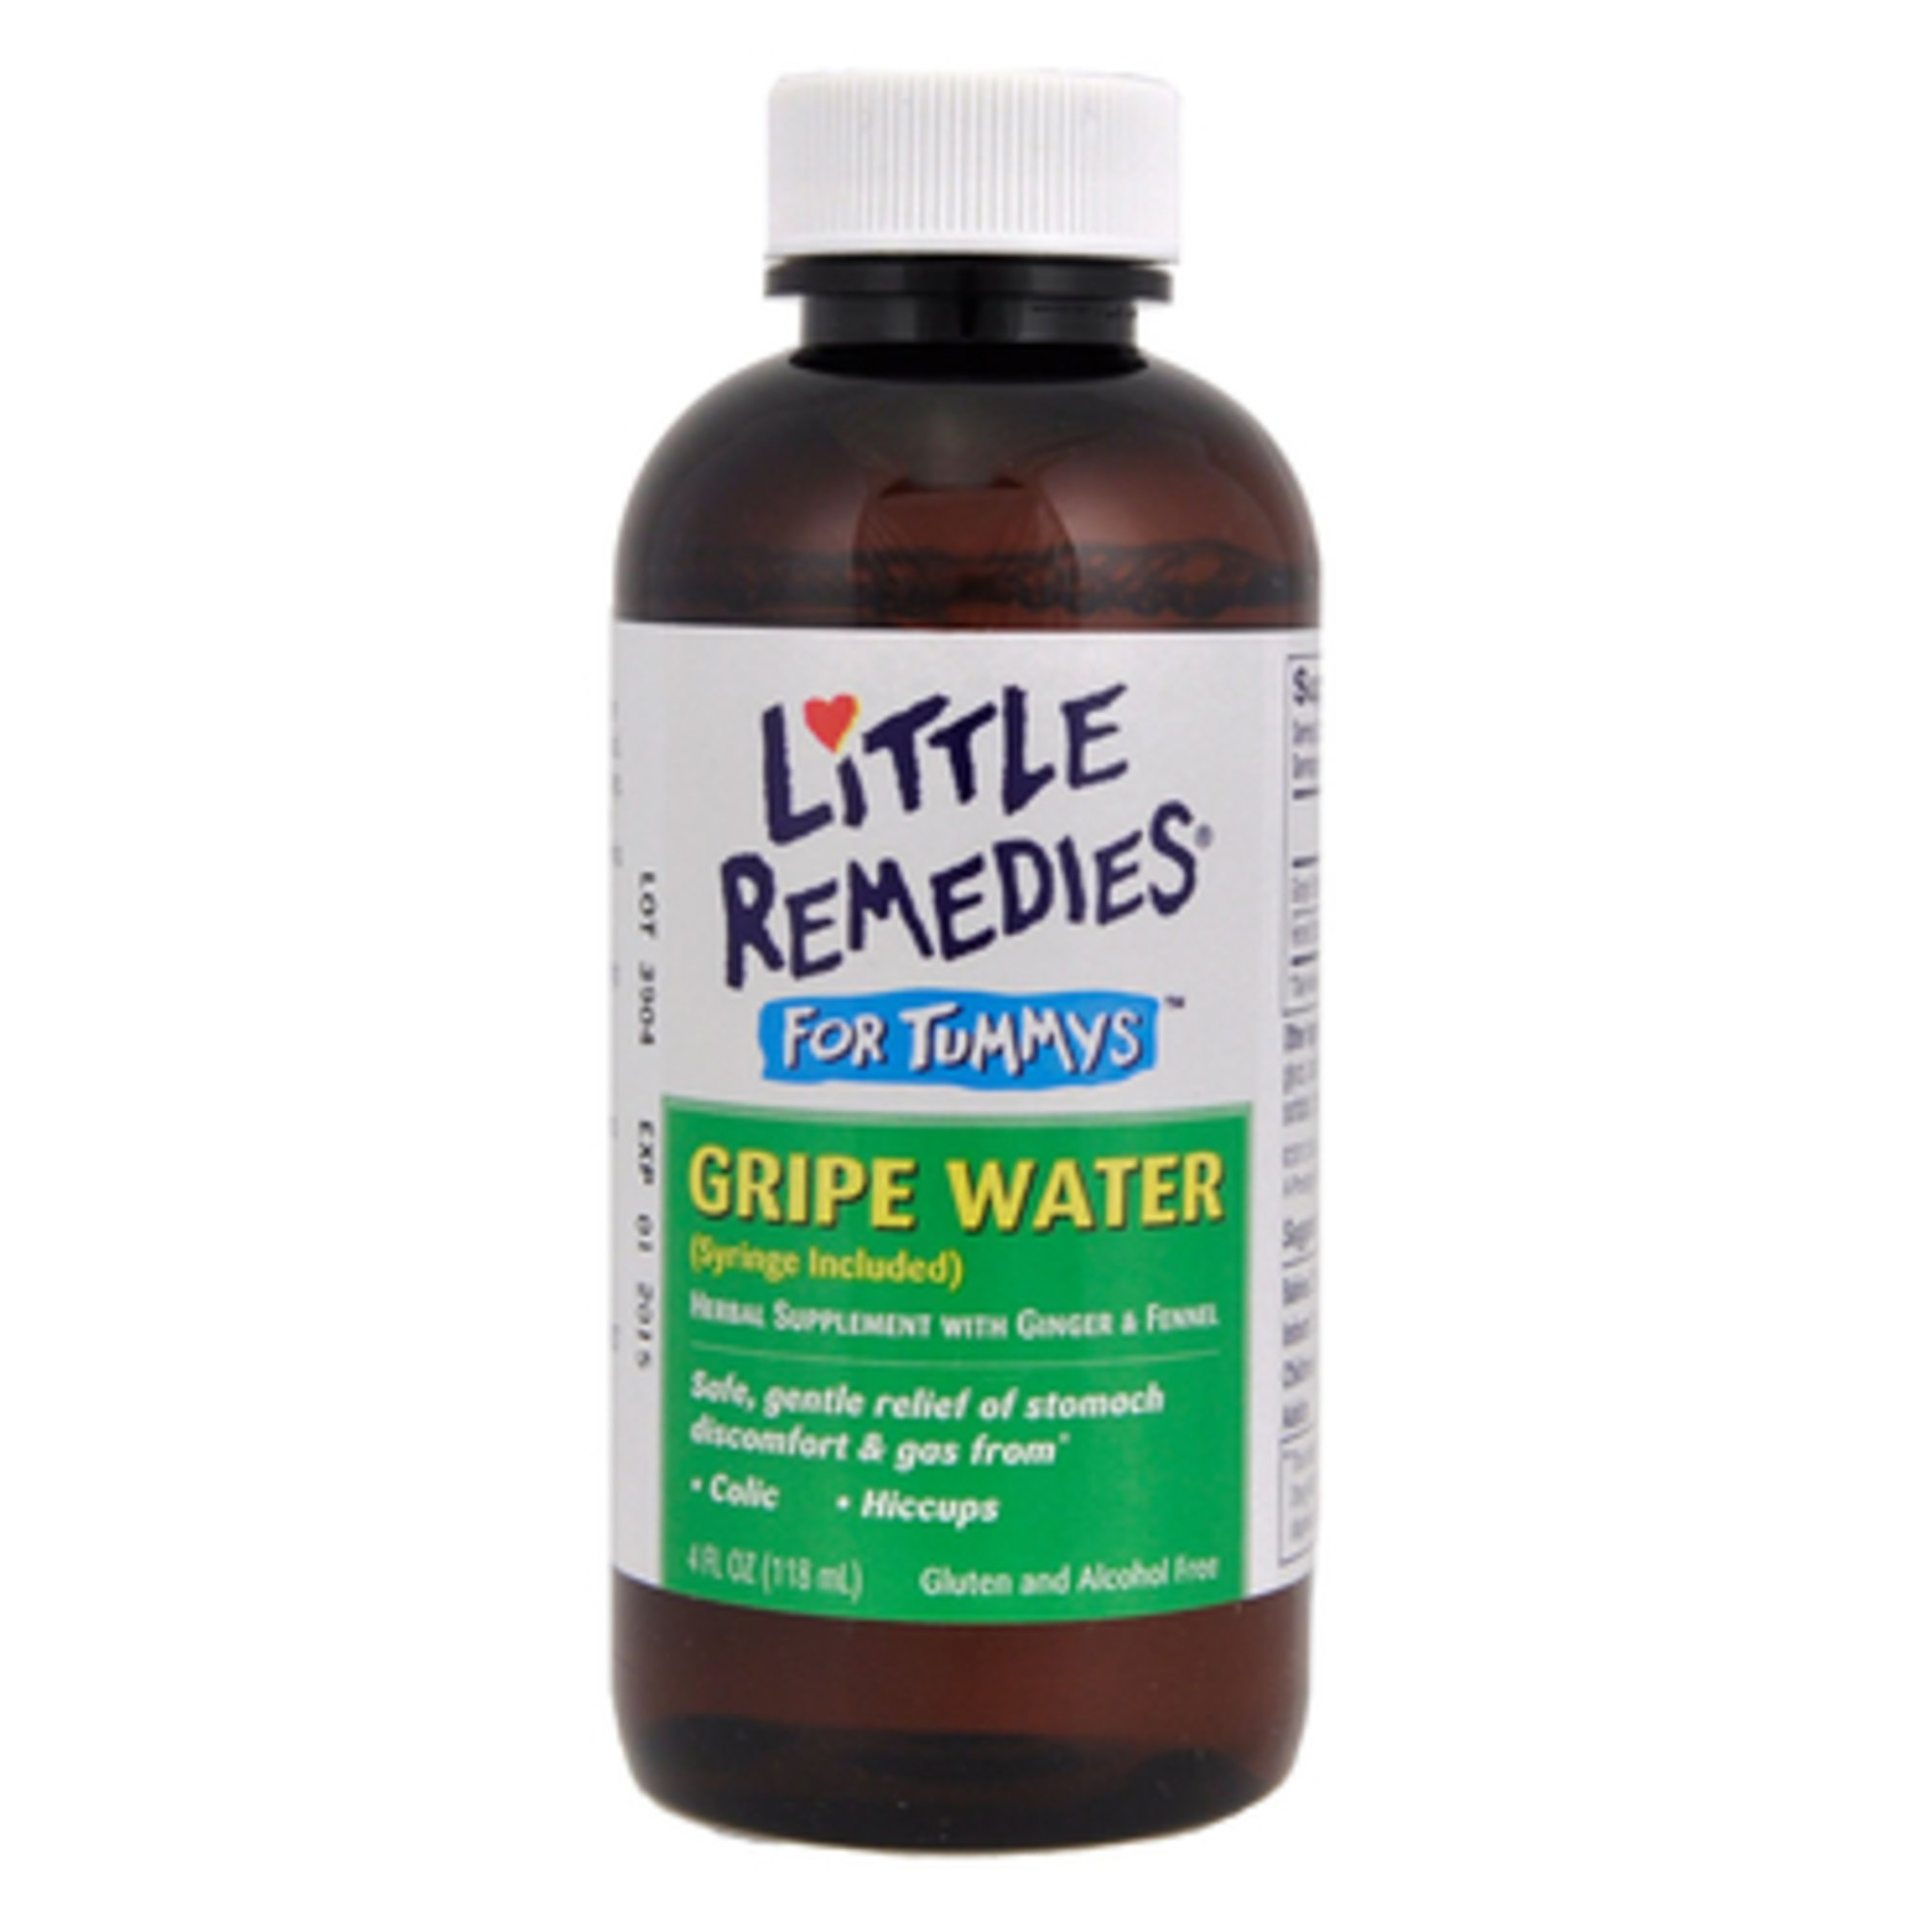 Little tummys gripe water reviews